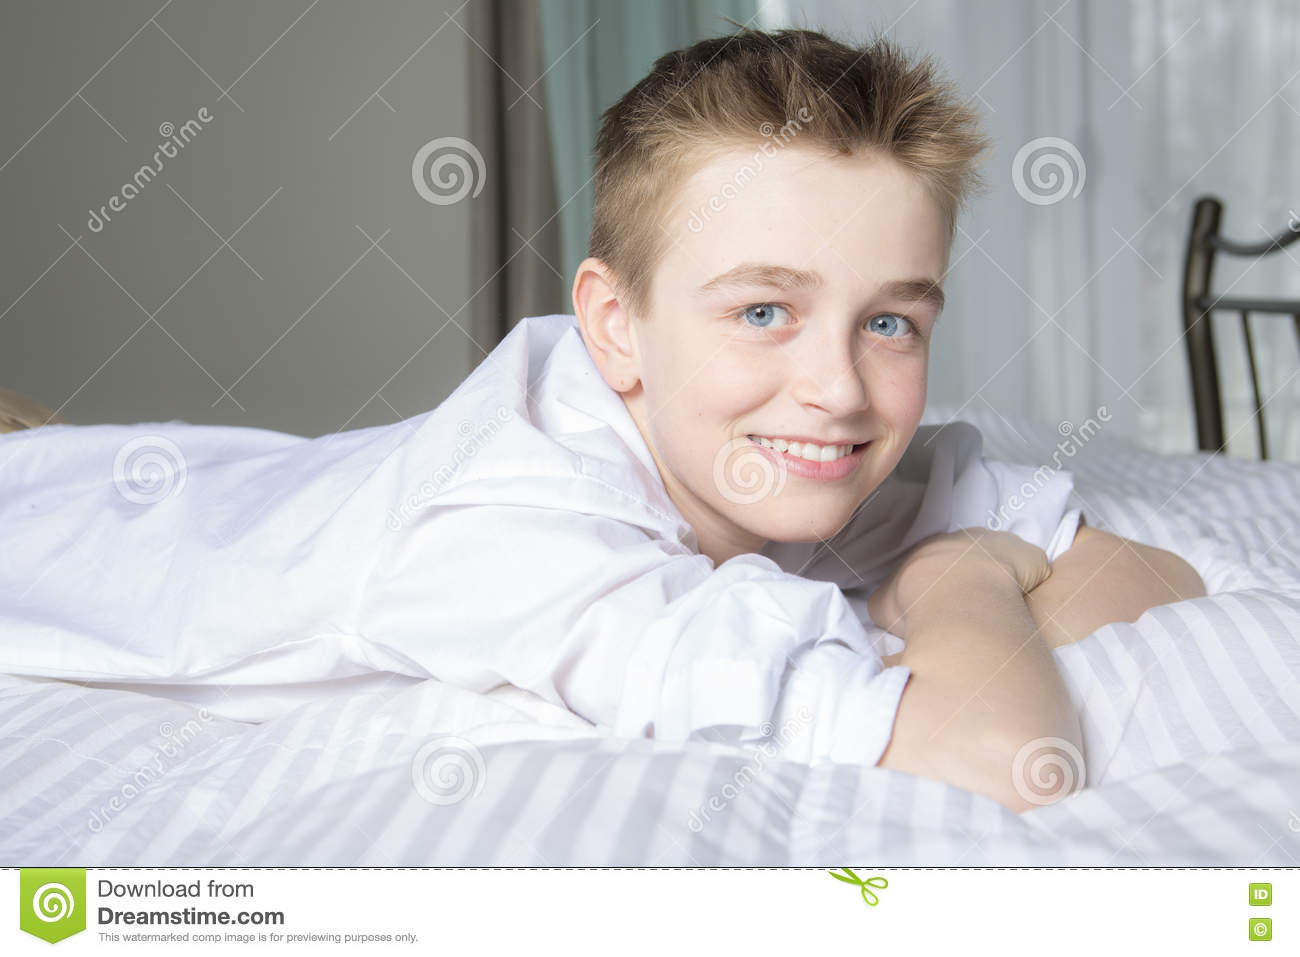 c2105eaf7 Happy Smiling Boy Lying In Bed At Home Stock Image - Image of child ...